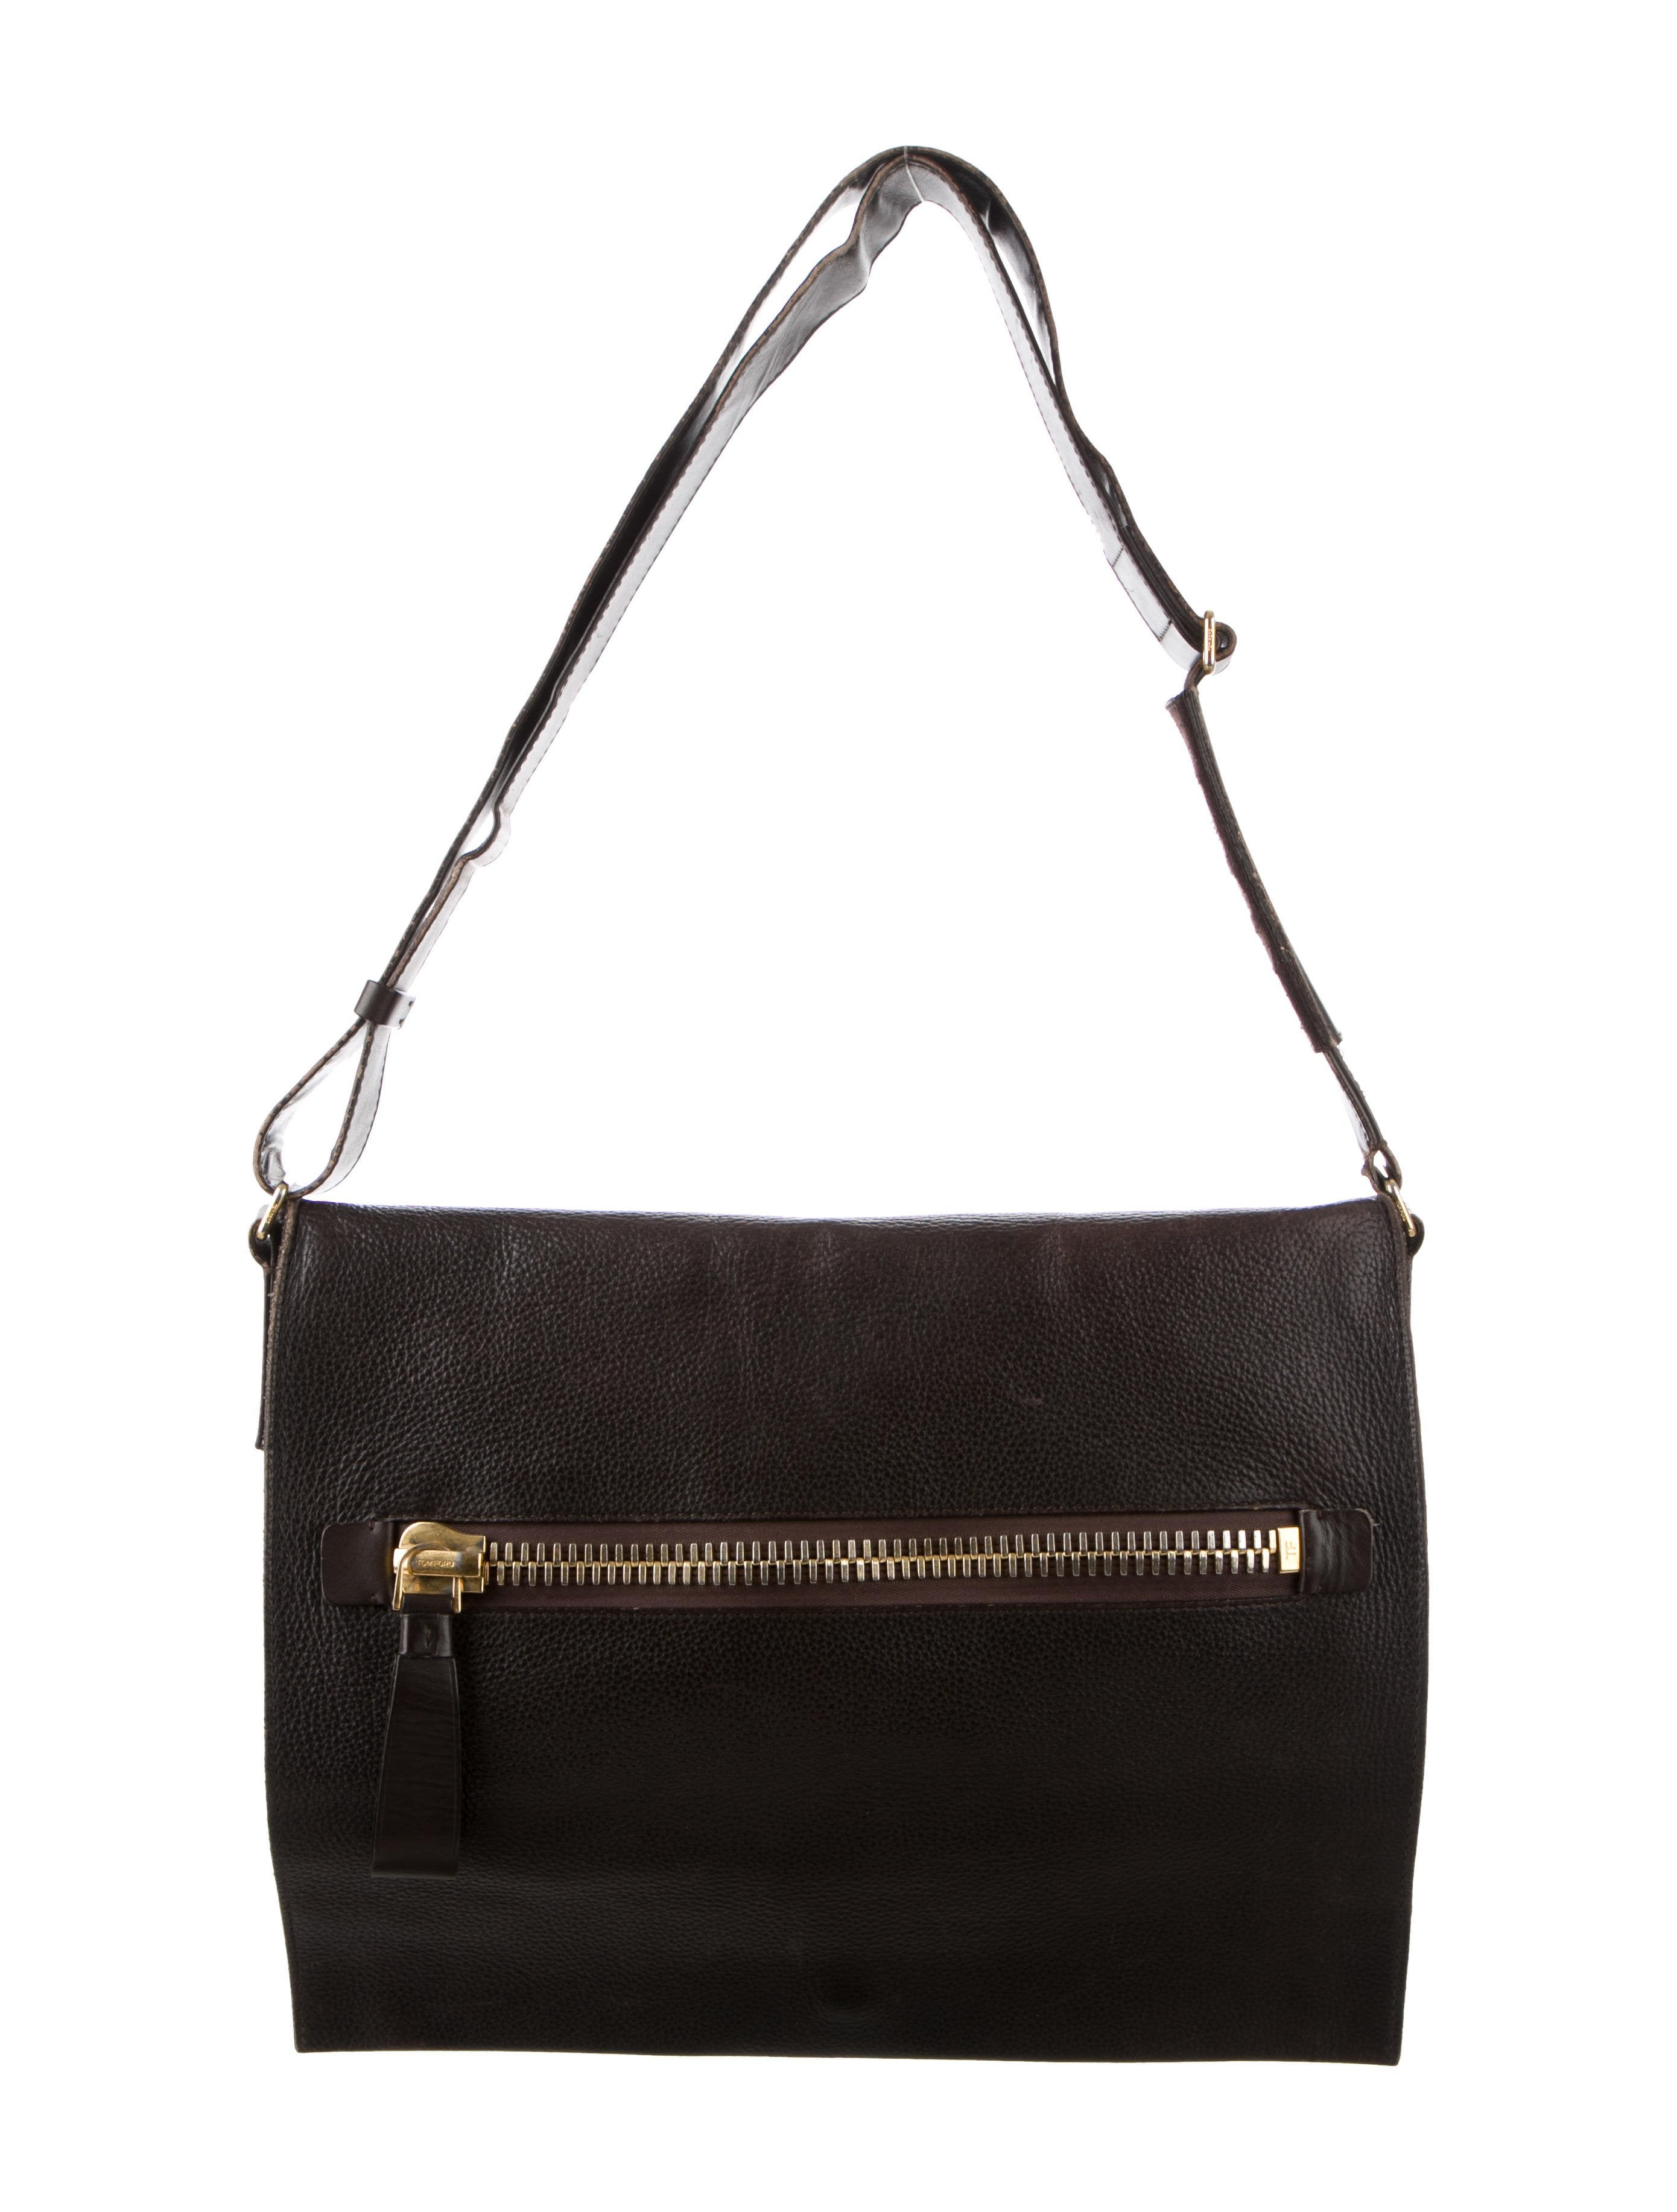 906cfc7225f Yves Saint Laurent Leather Montmartre Bag - Bags - YVE89940 | The ...